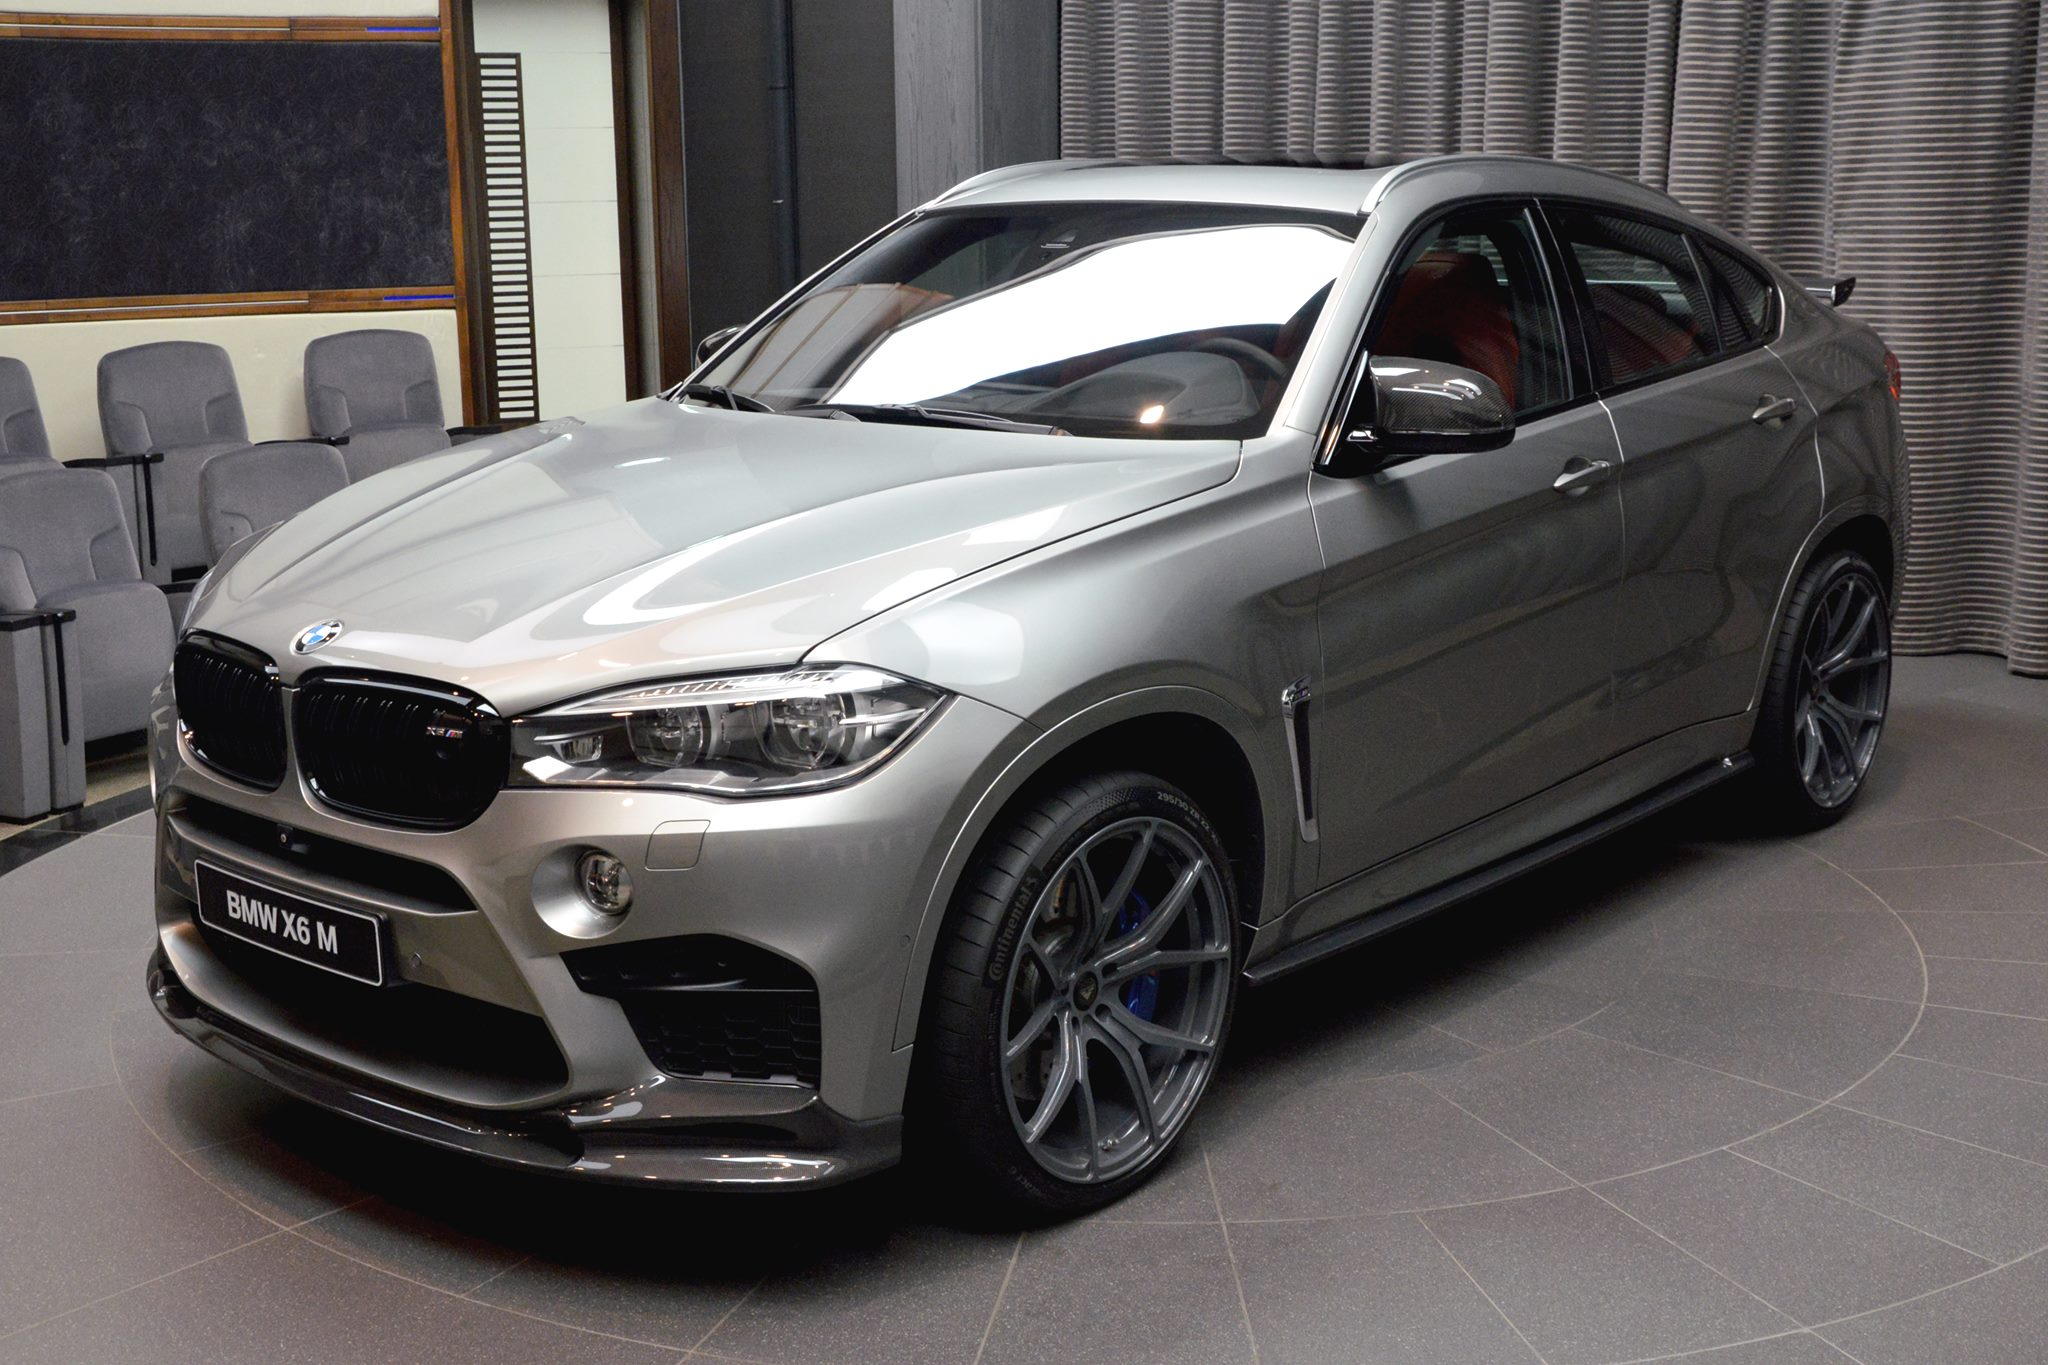 Bmw X6 M Delivered In Abu Dhabi Decked With Aftermarket